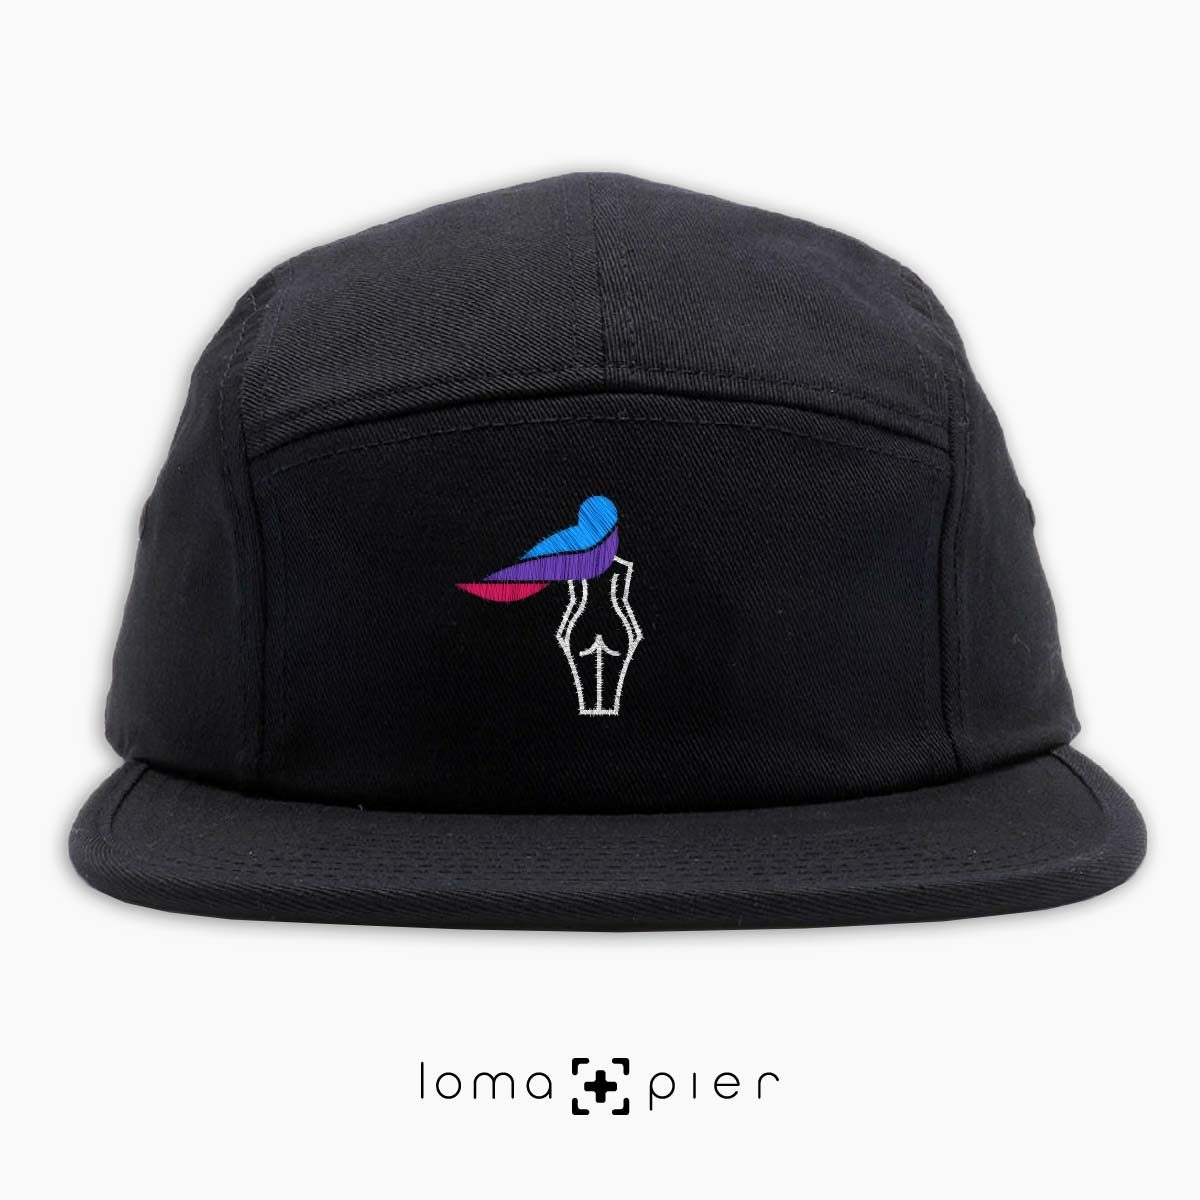 WAVY BEACH icon embroidered on a black cotton 5-panel hat with multicolor thread by loma+pier hat store